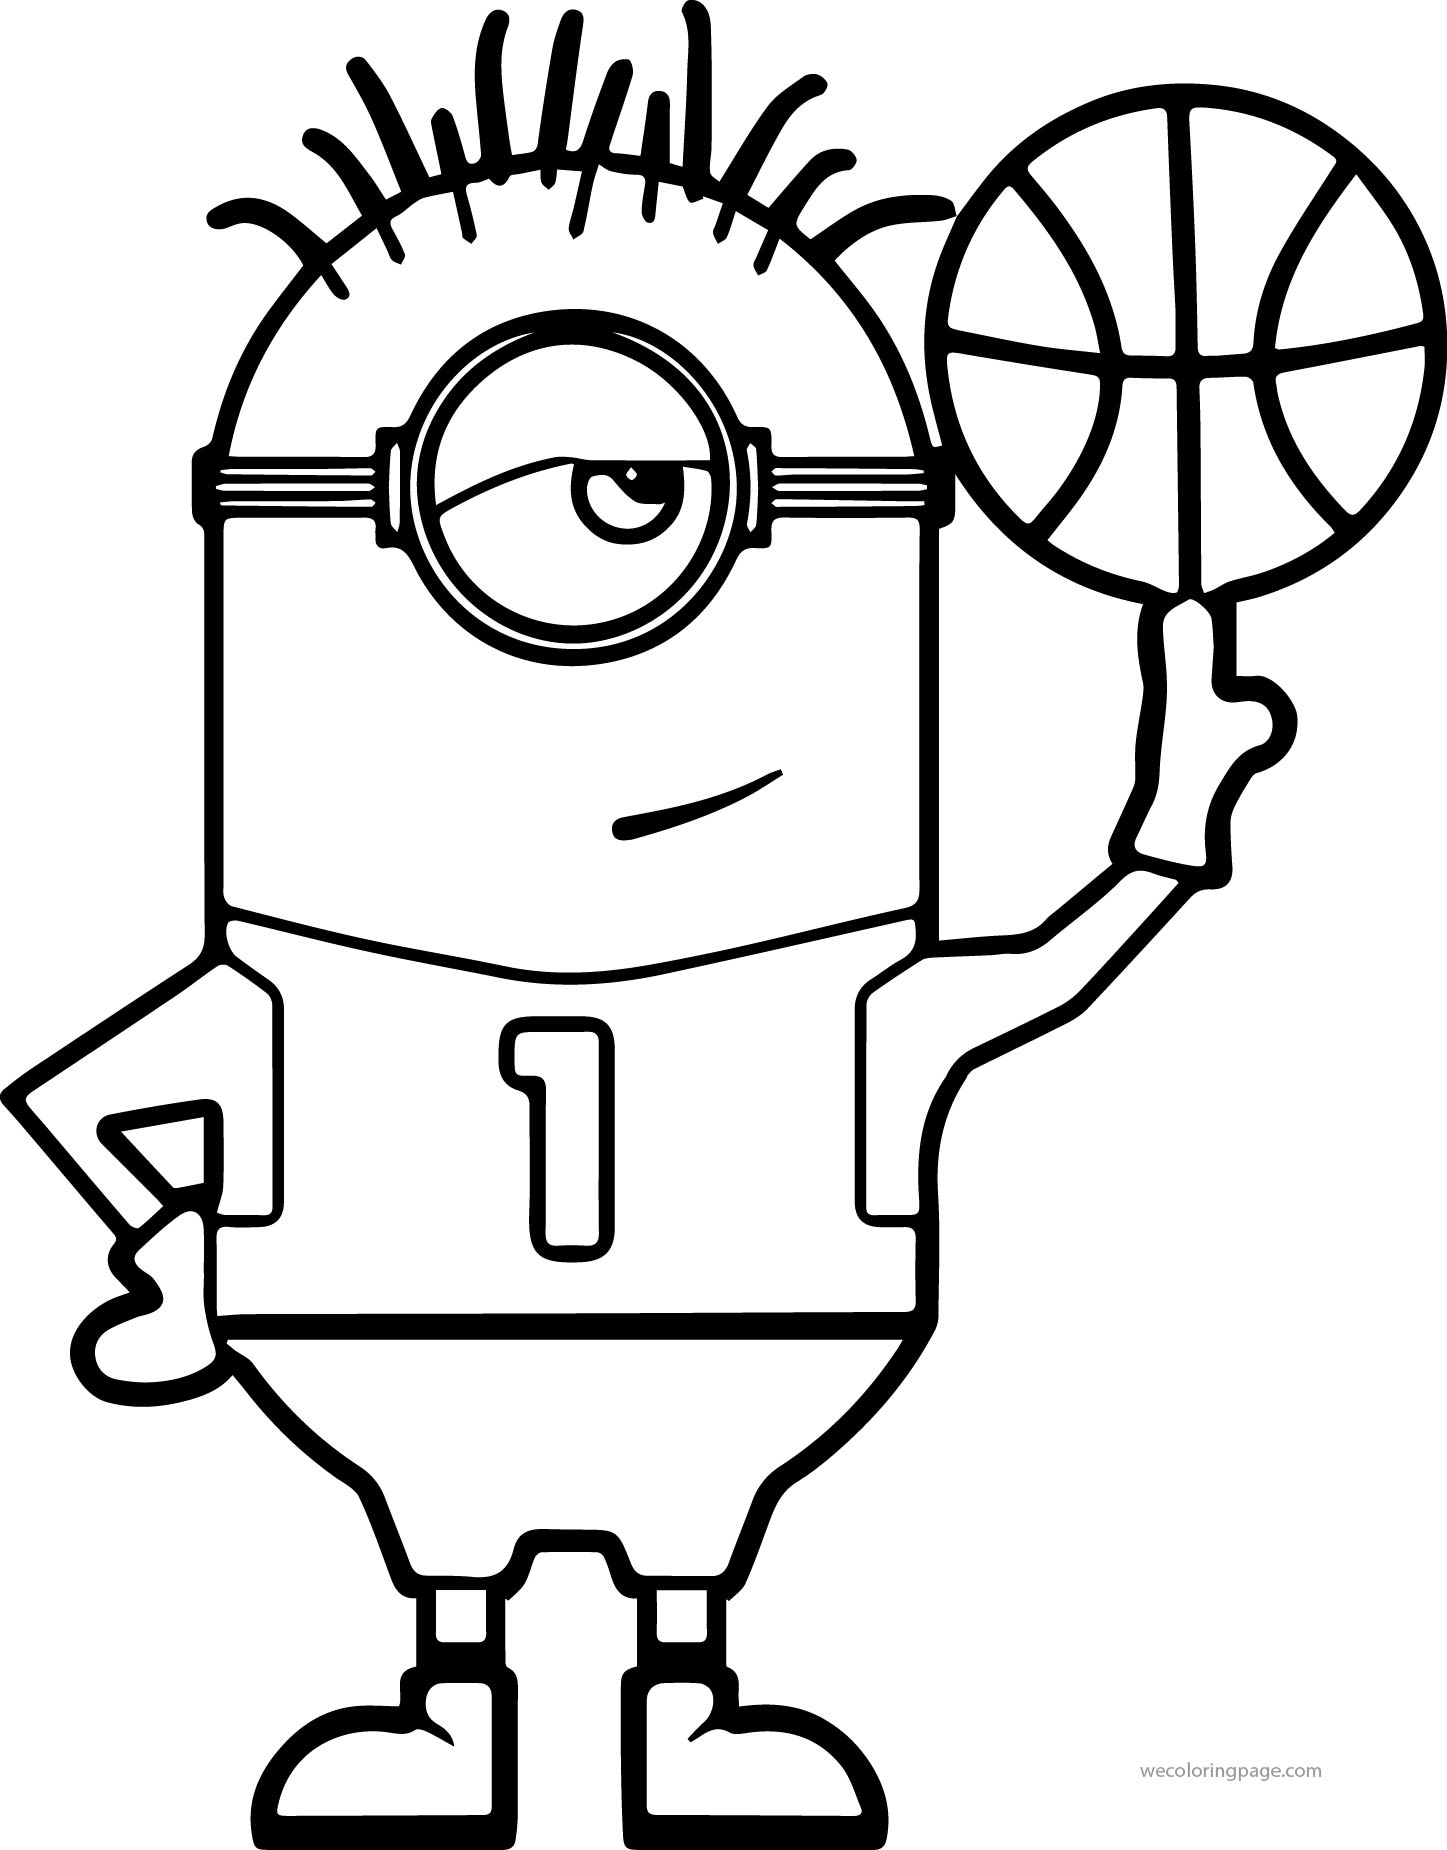 nba coloring pages - minion turn basketball coloring page